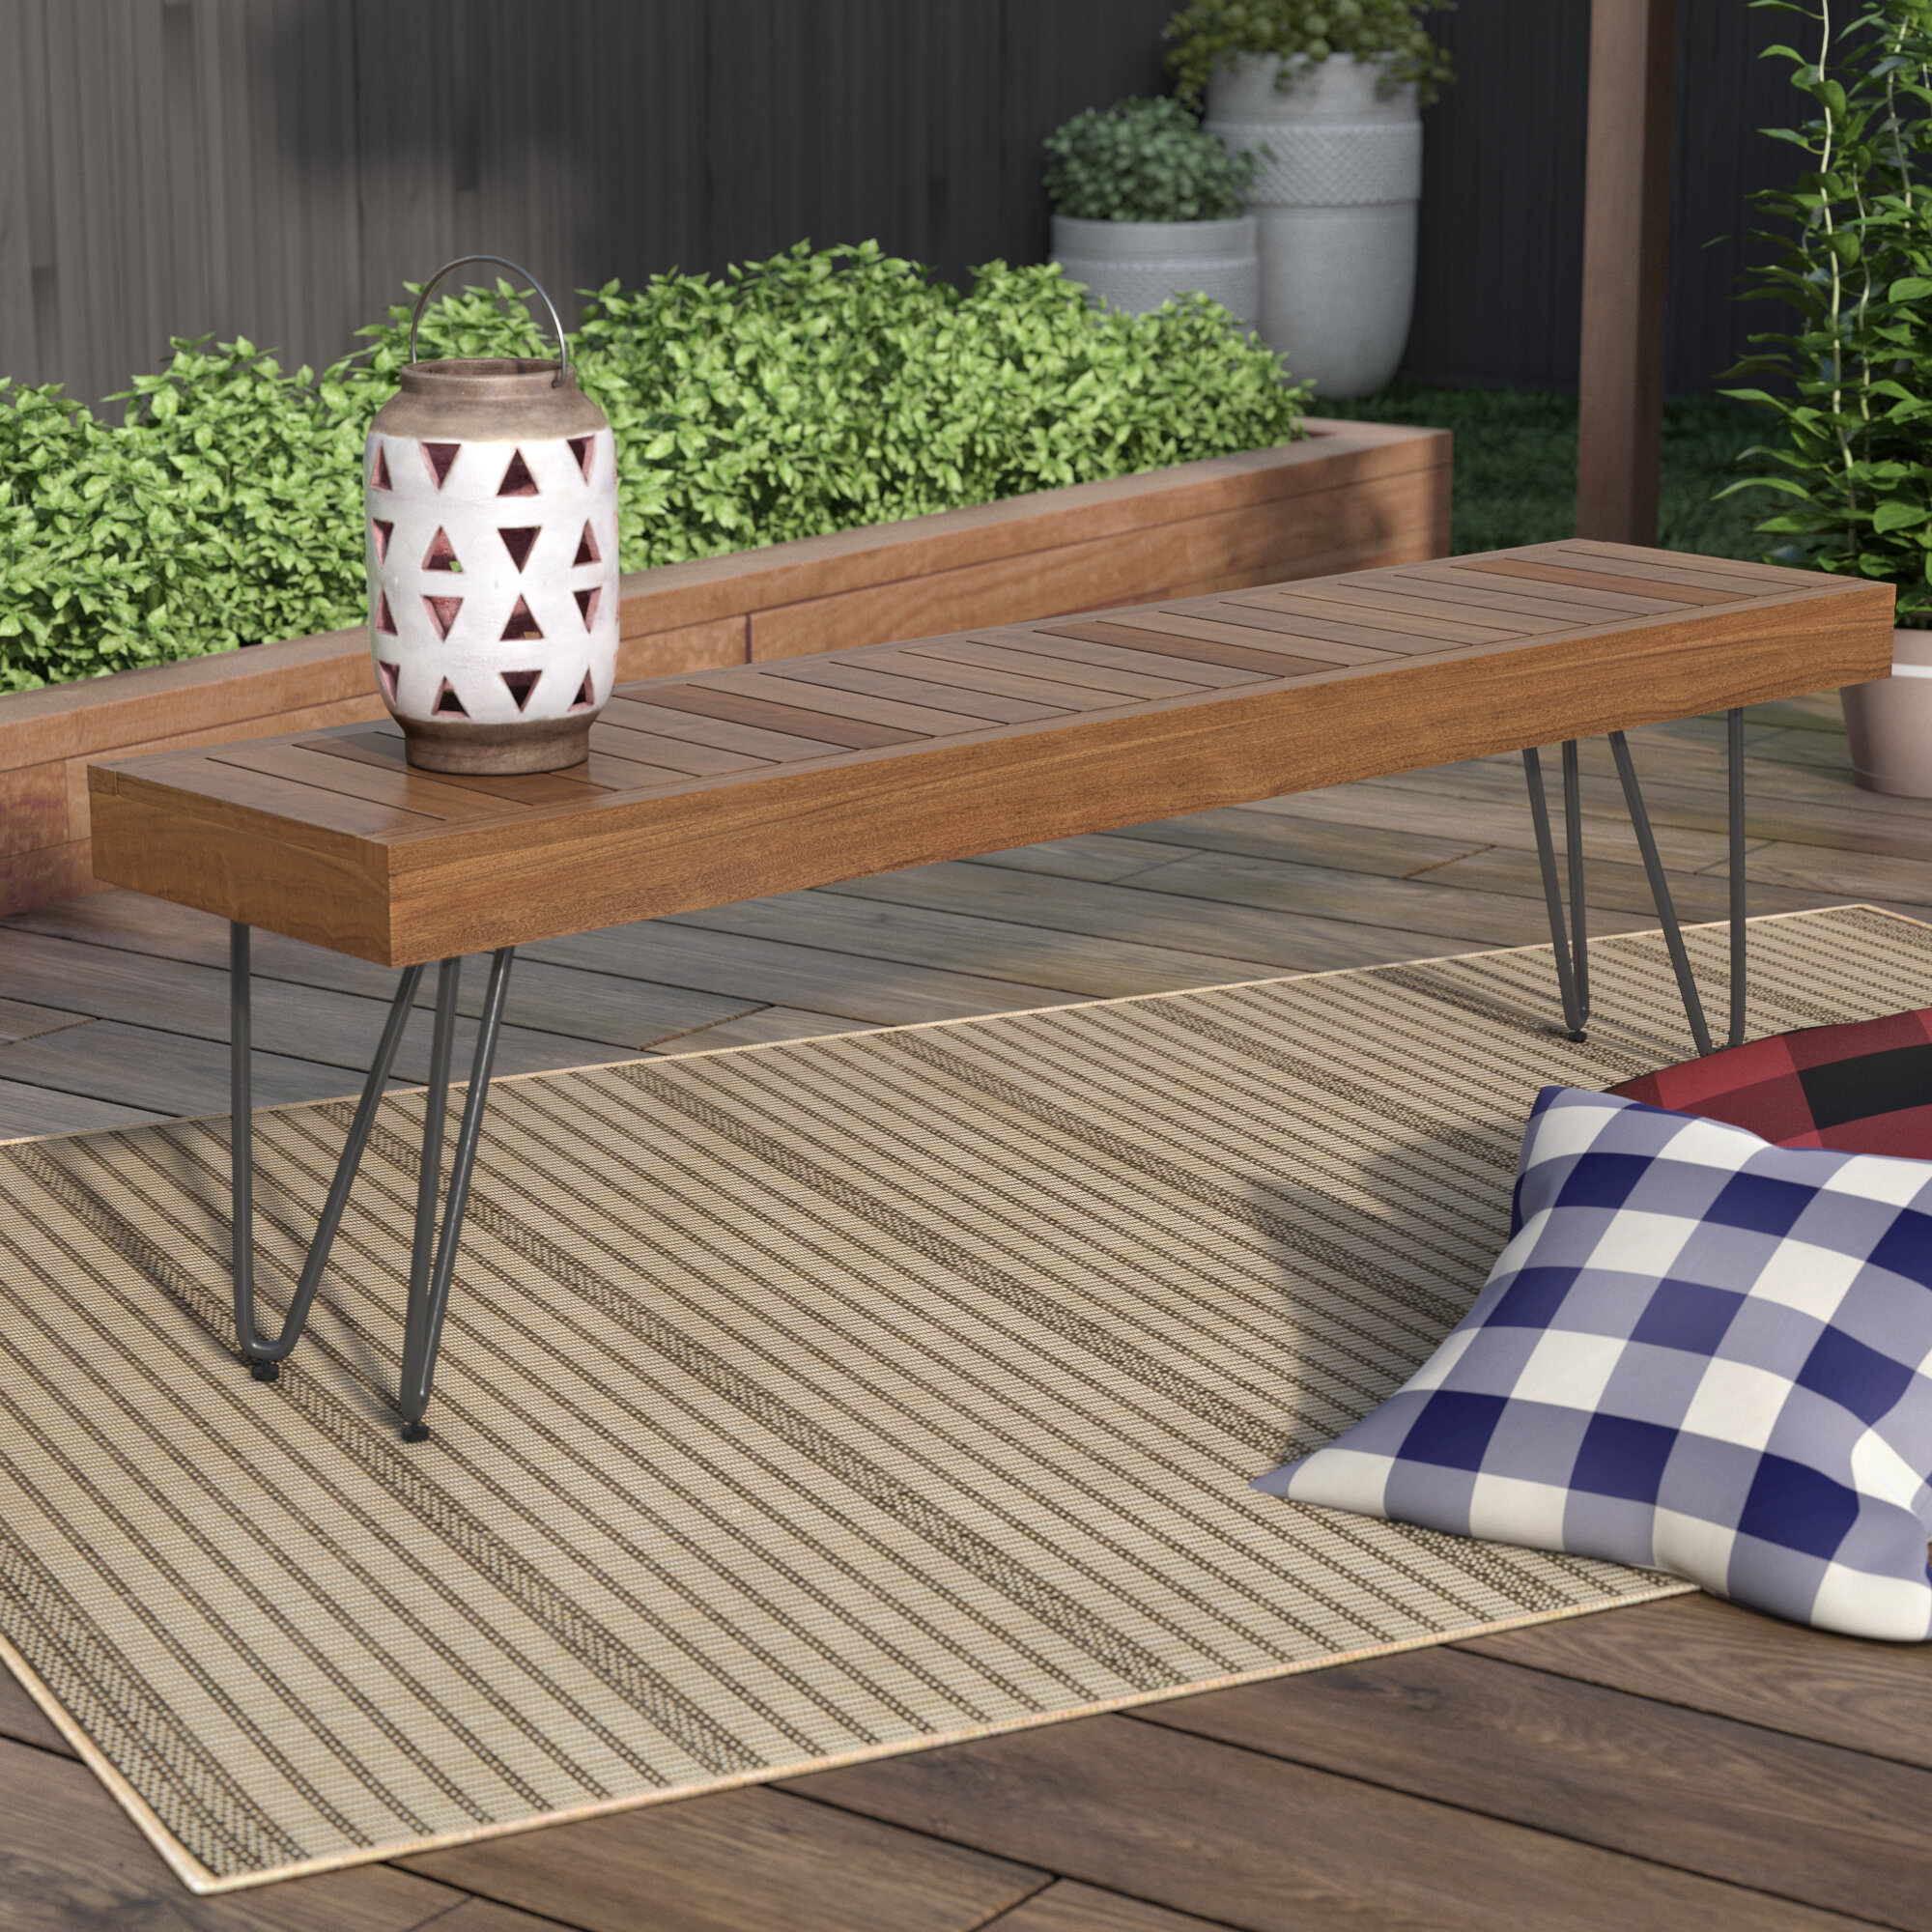 Peachy Outdoor Wooden Picnic Bench Gamerscity Chair Design For Home Gamerscityorg